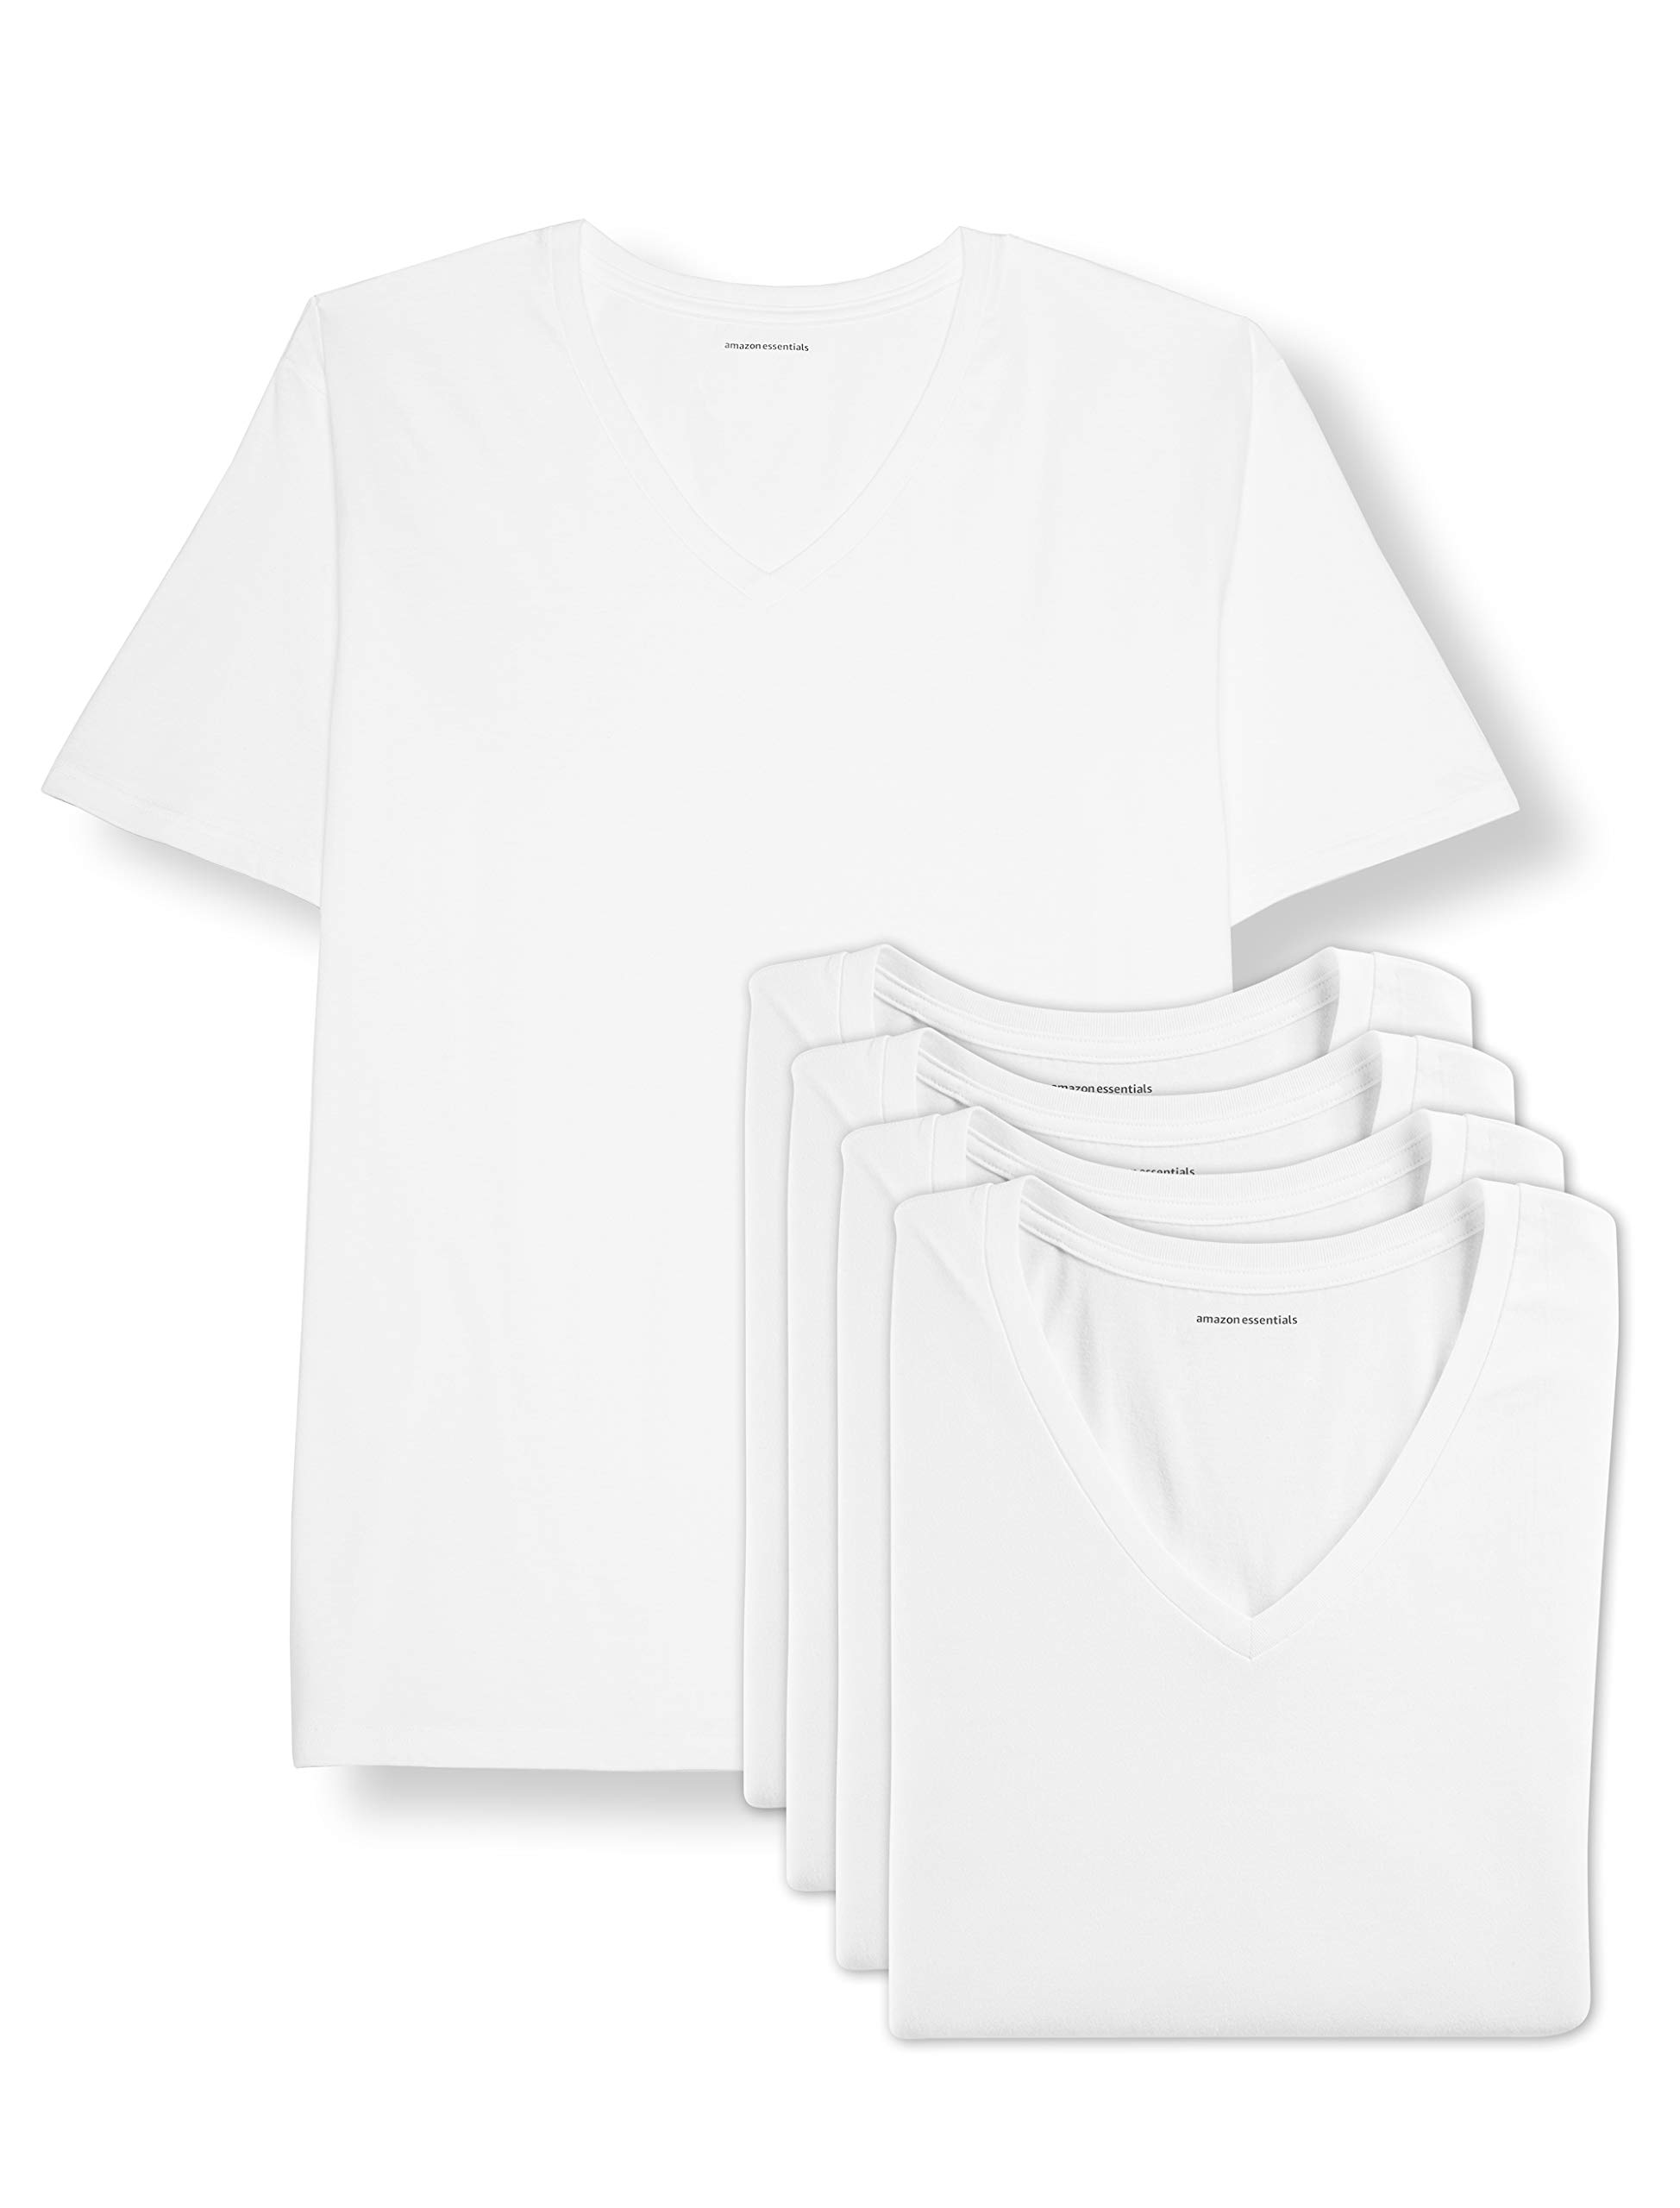 Amazon Essentials Men's Big & Tall 5-Pack V-Neck Undershirts Shirt, -White, 4XL